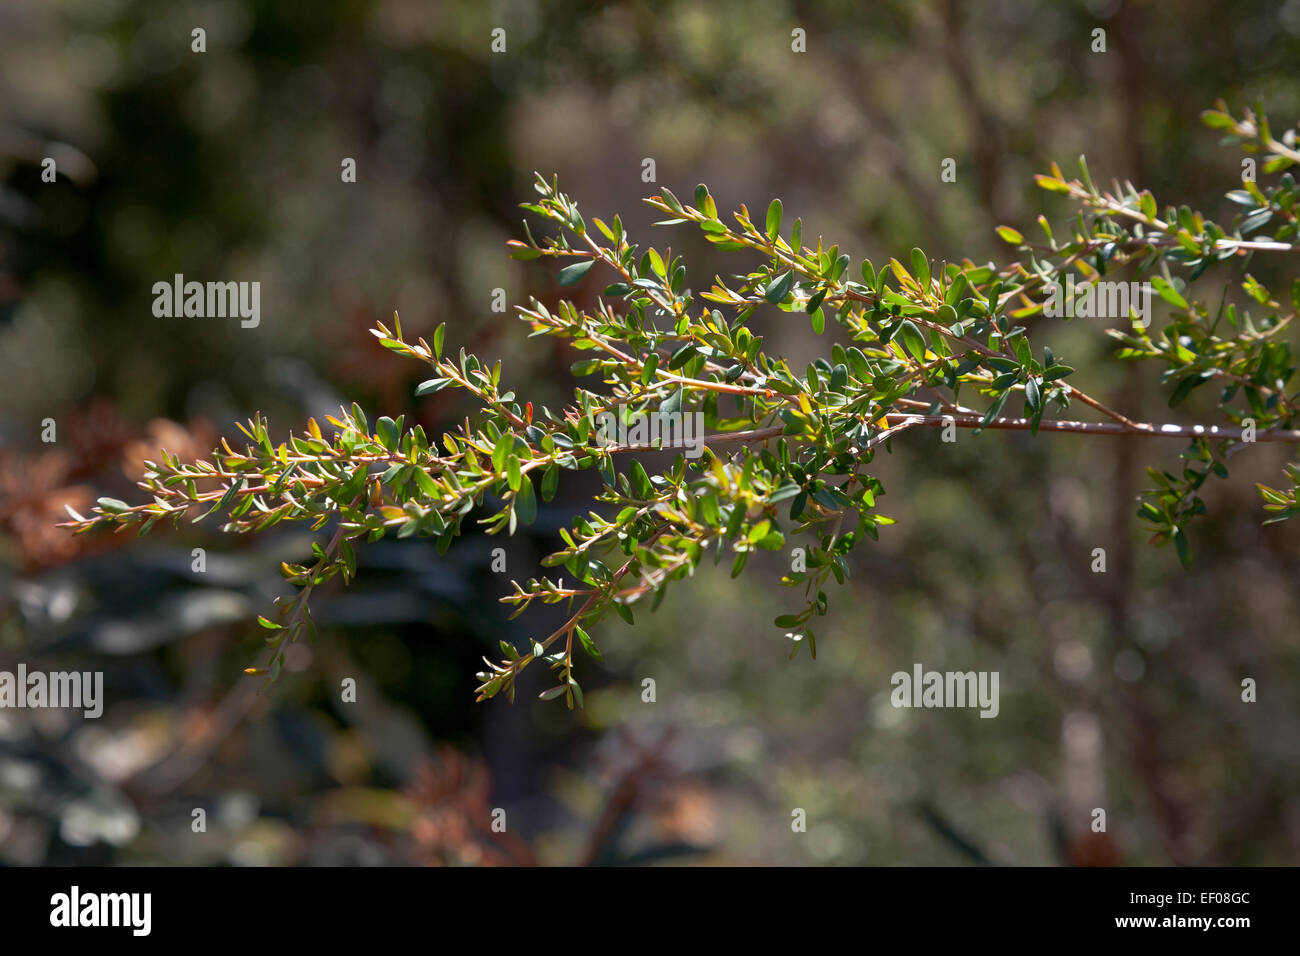 Yellow tea tree branch in NSW, Australia - Stock Image